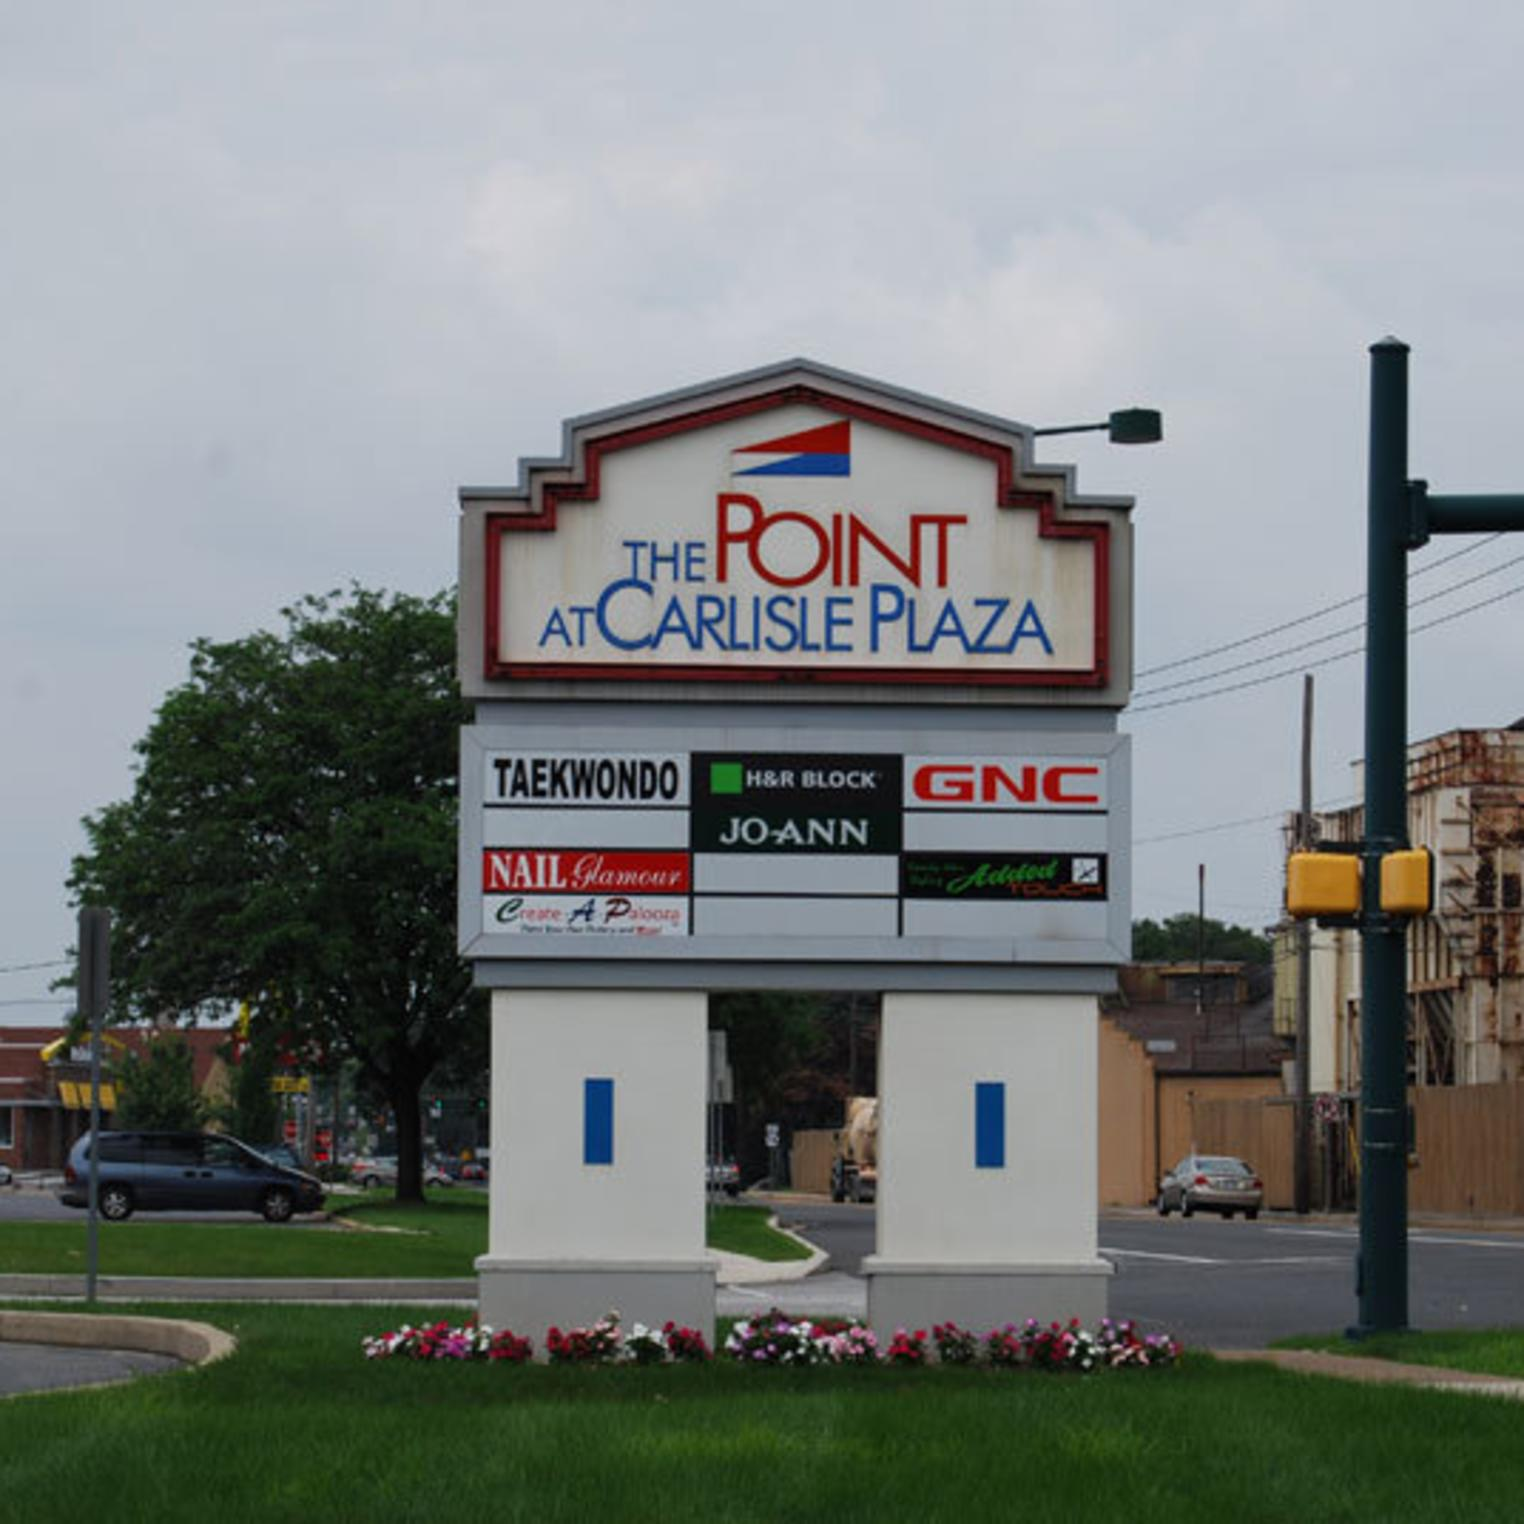 The Point at Carlisle Plaza